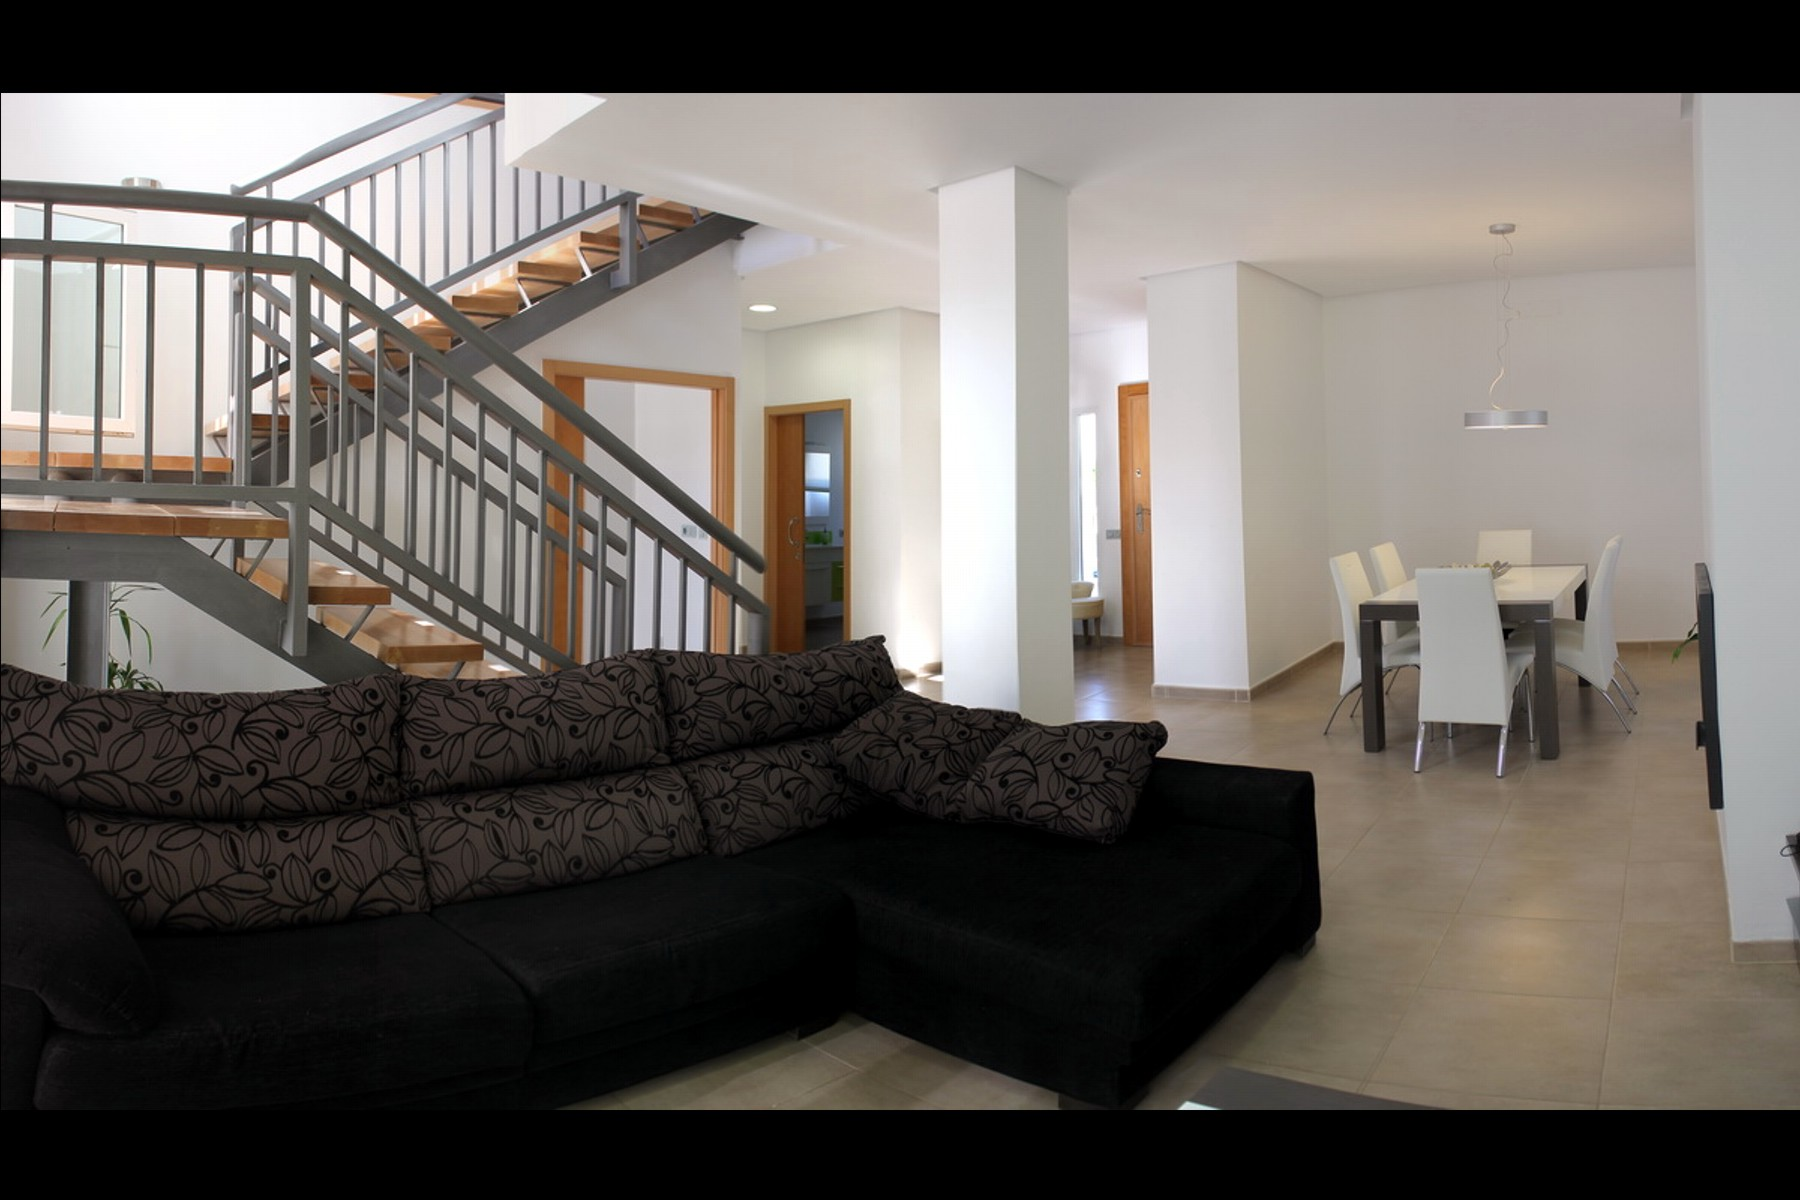 Imaginarq-317-Vivienda-unifamiliar-Altea-Alicante-45A